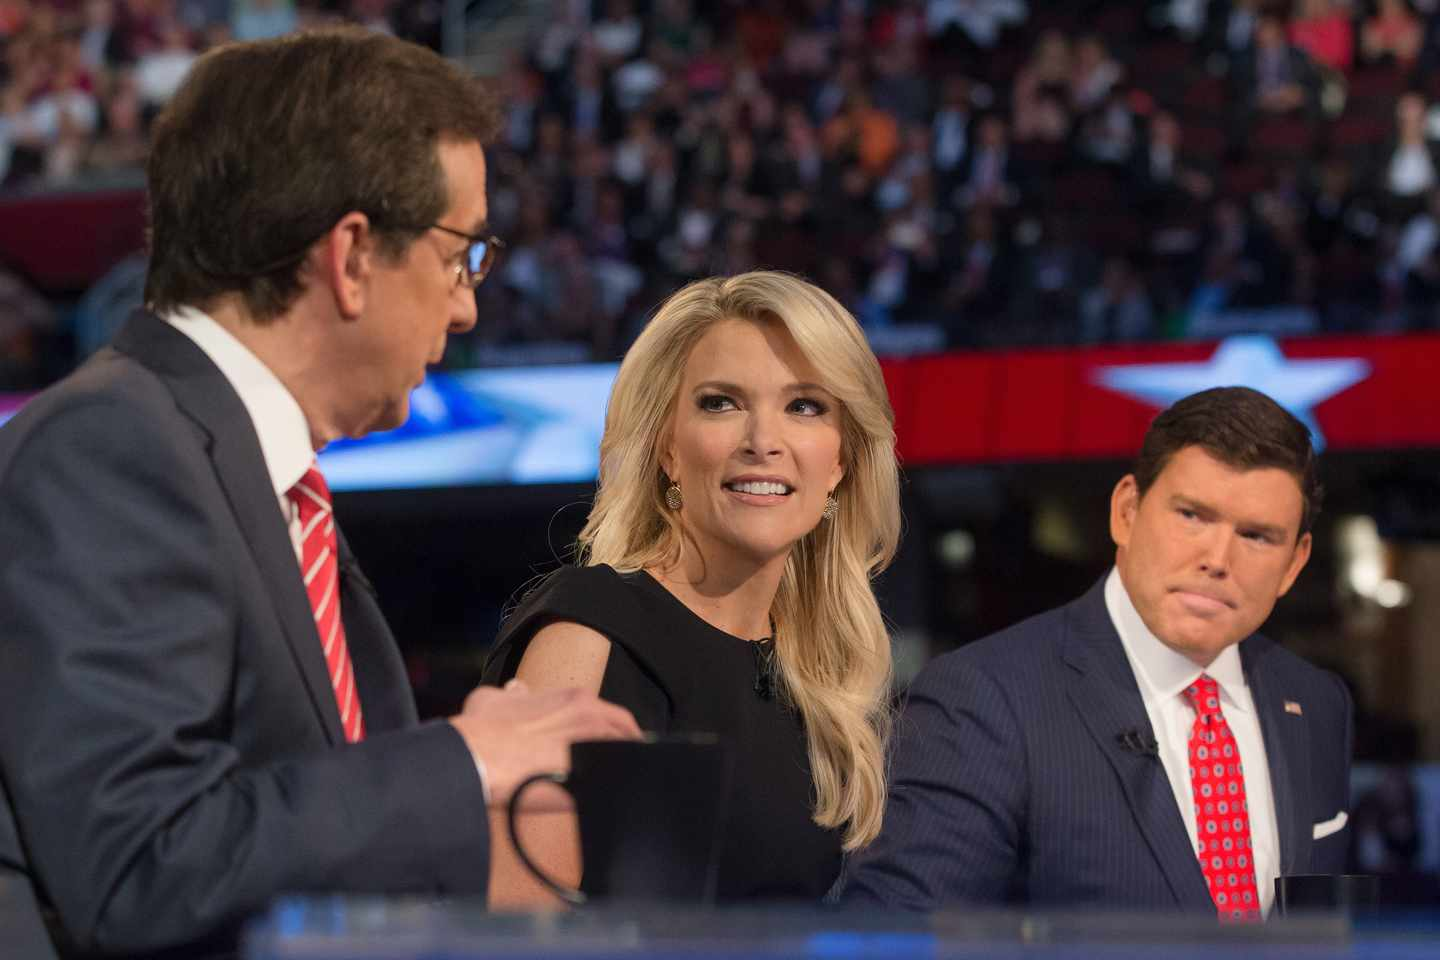 What Dem Debate Hosts Can Learn From Fox's 2015 Tack